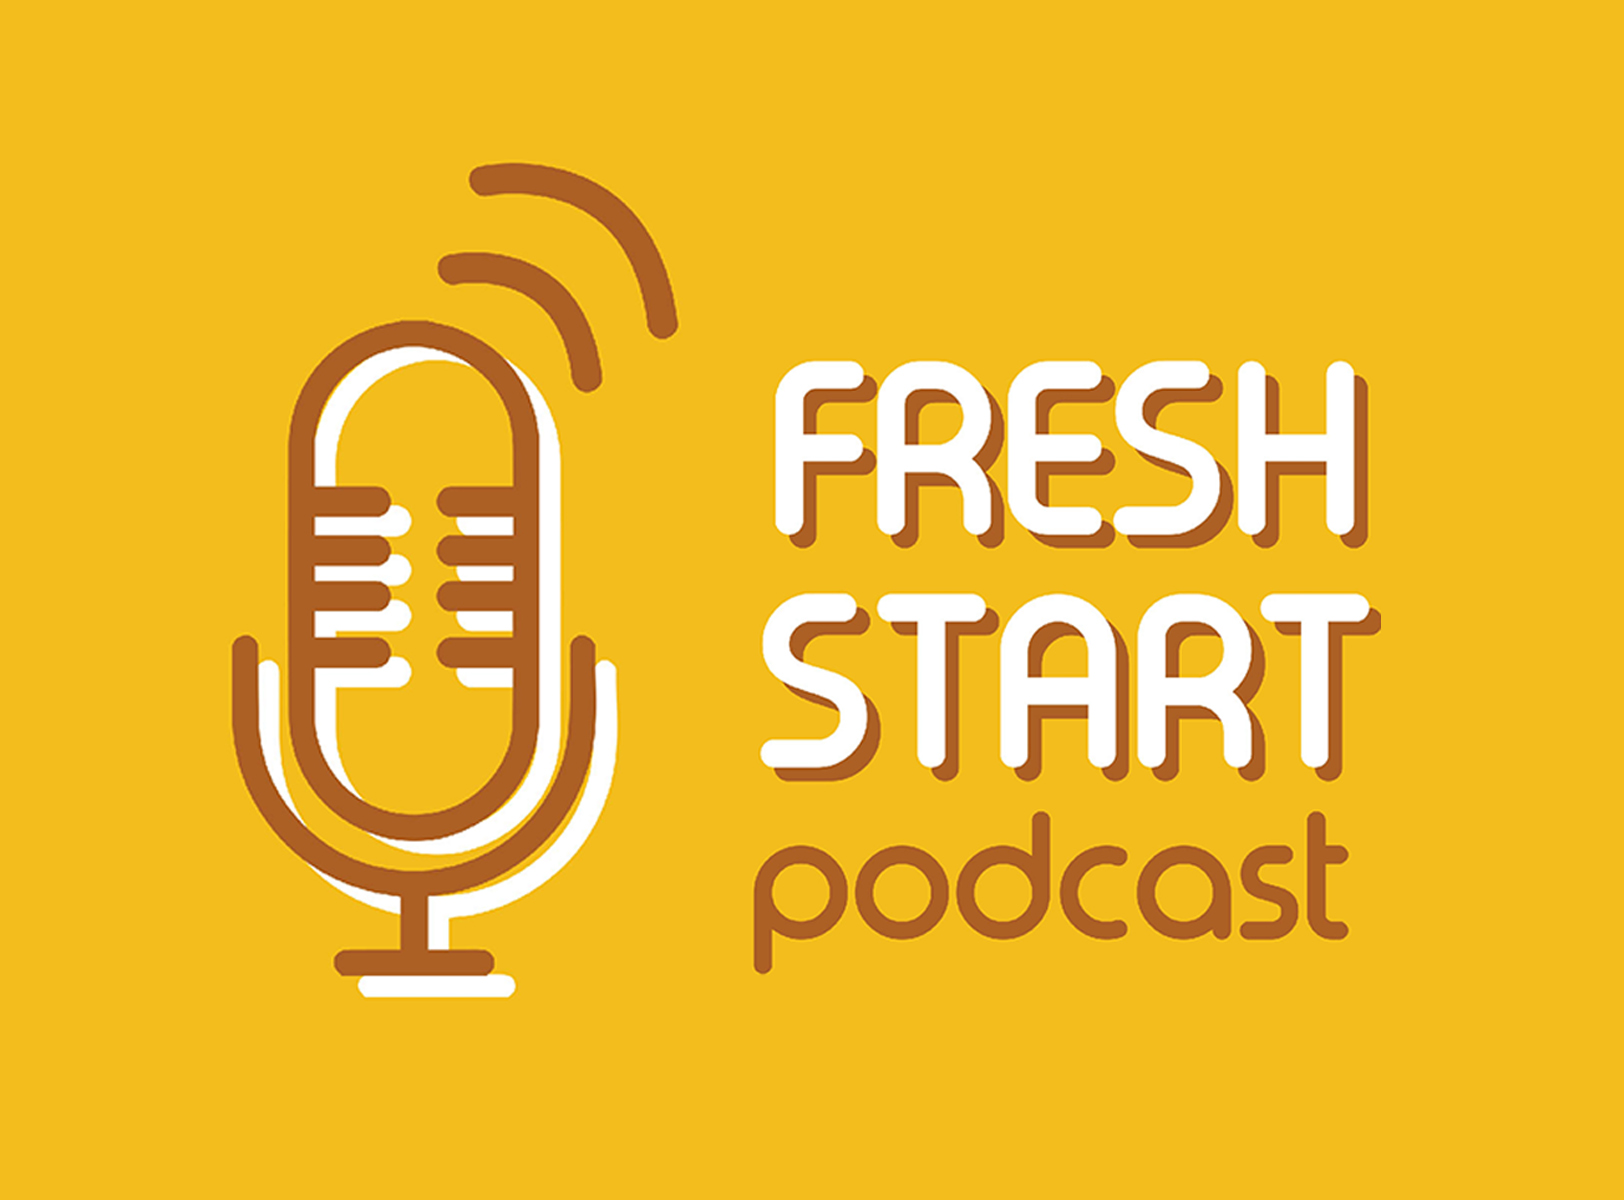 Fresh Start: Podcast News (7/11/2019 Thu.)